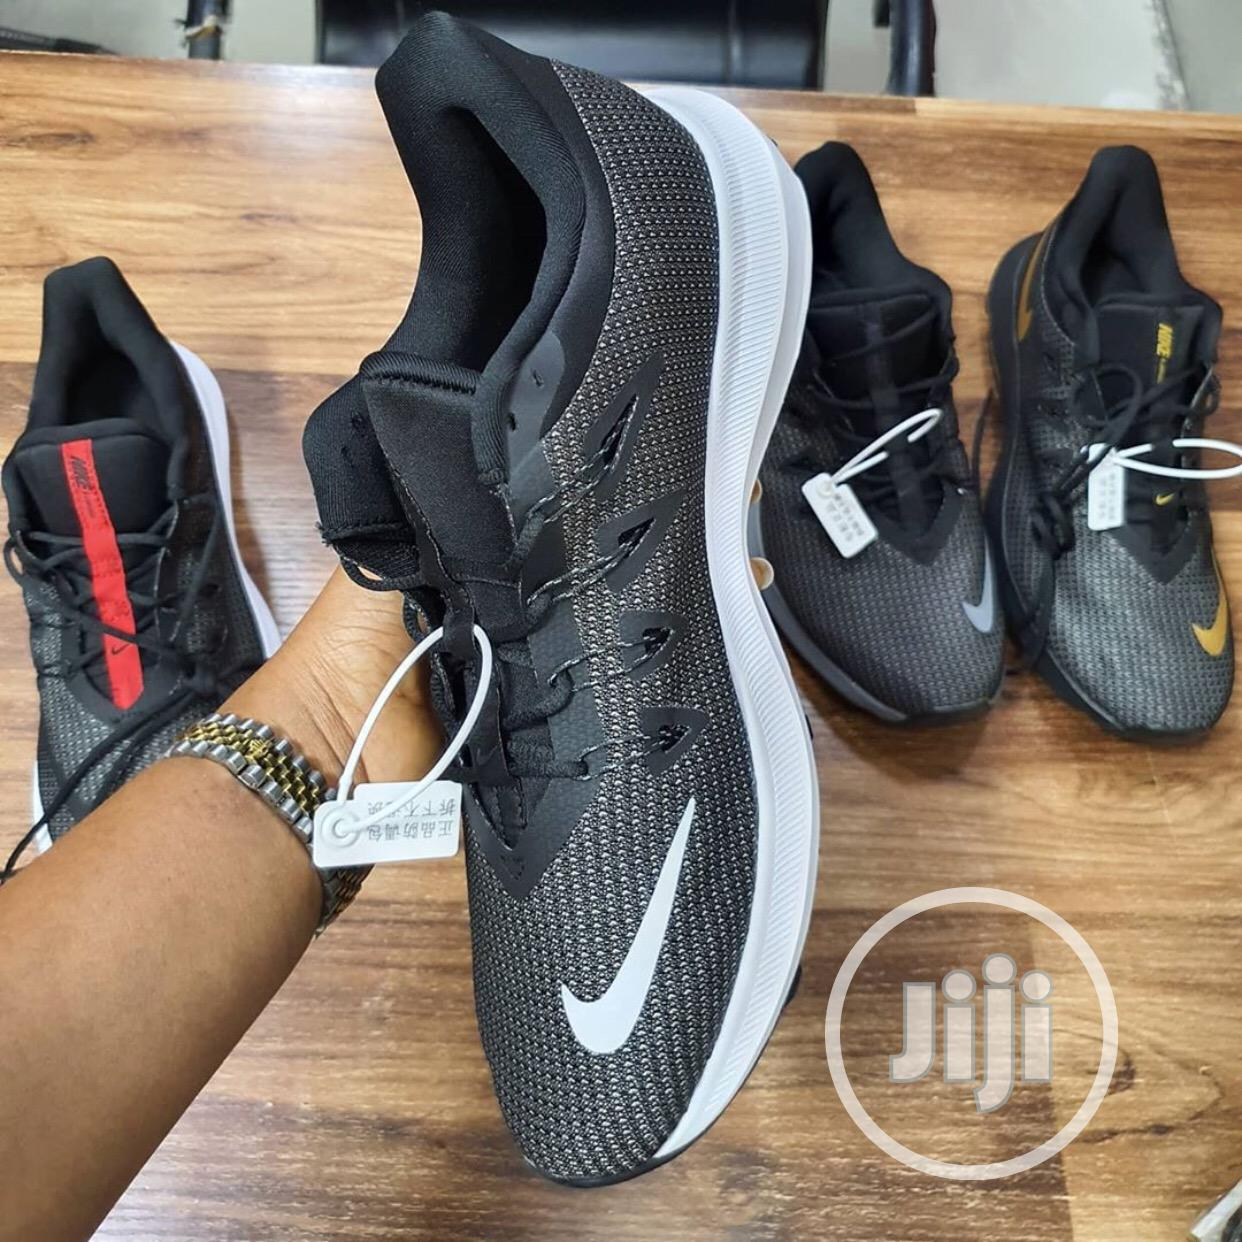 High Quality Nike Running Shoe   Shoes for sale in Surulere, Lagos State, Nigeria